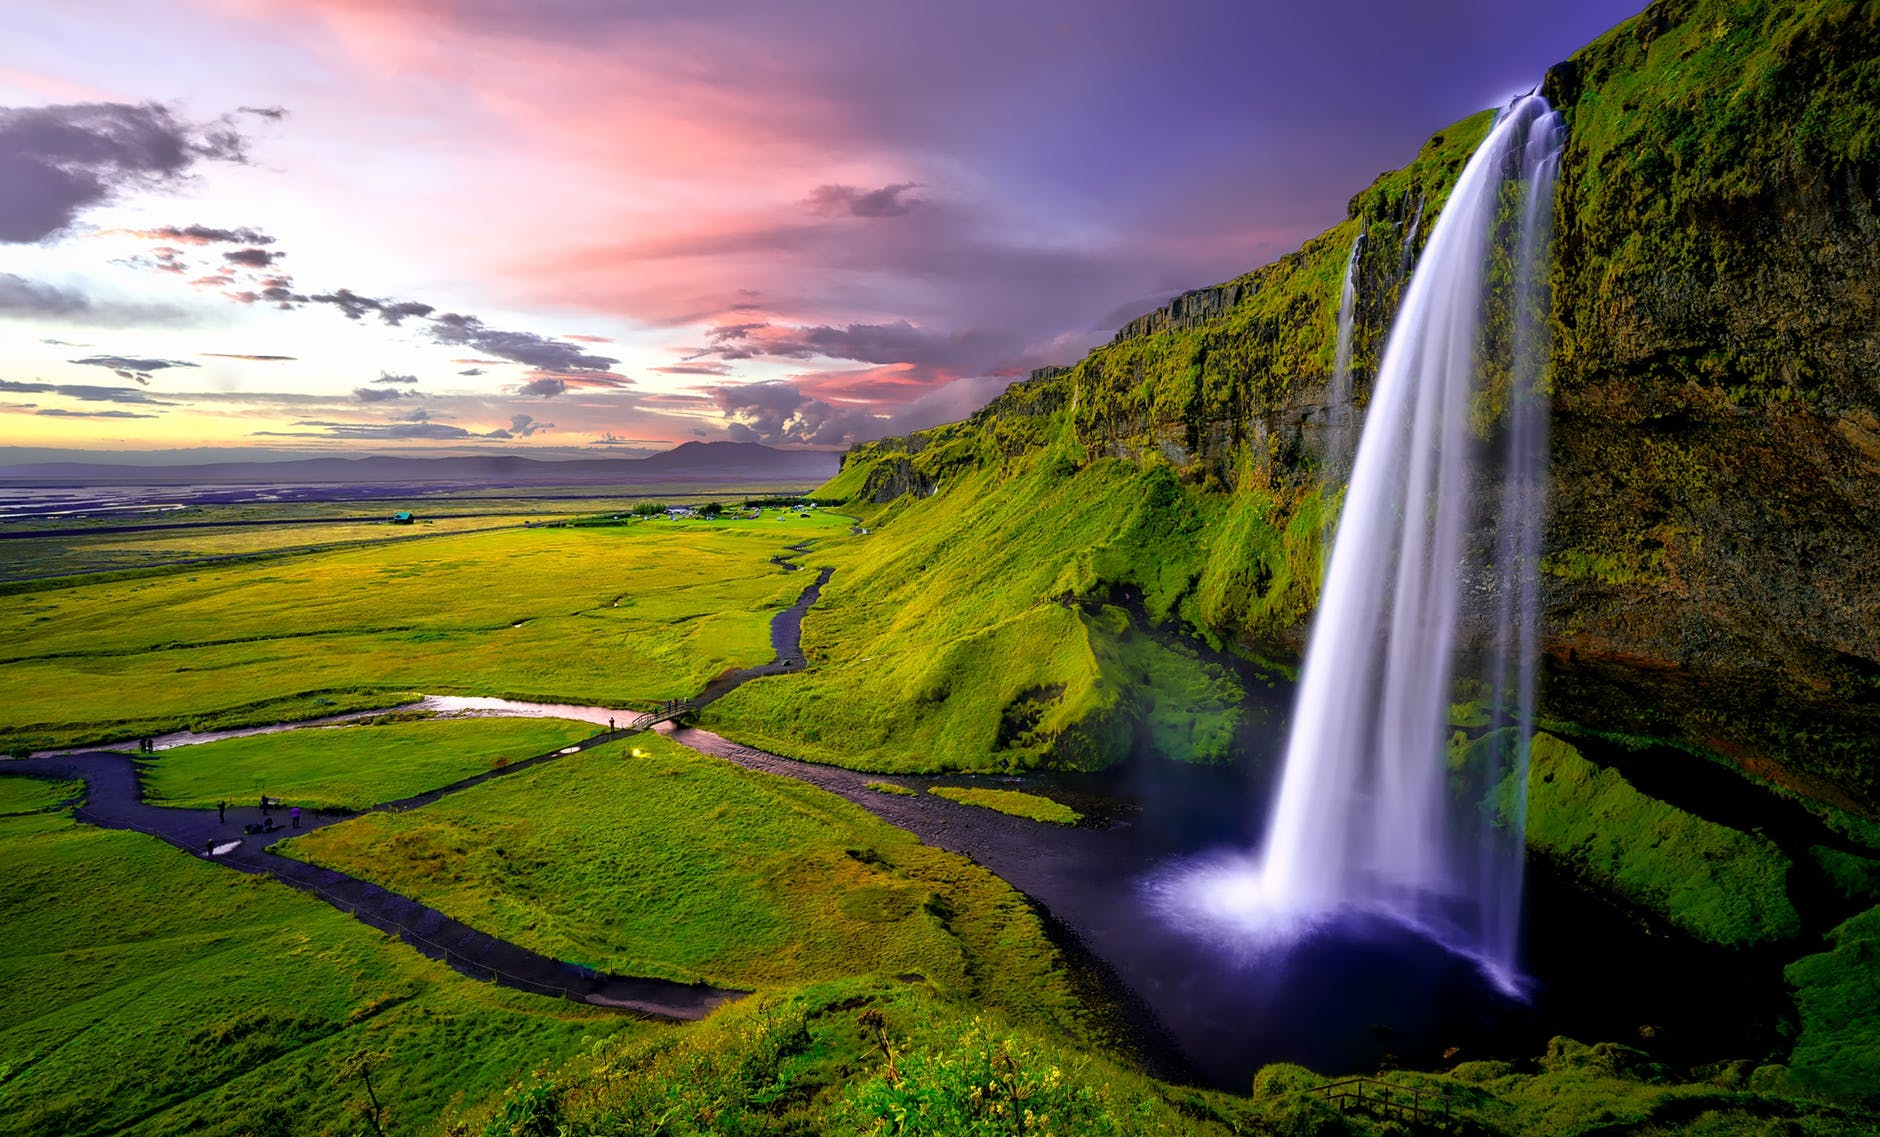 Ten of the World's Most Awe-Inspiring Waterfalls